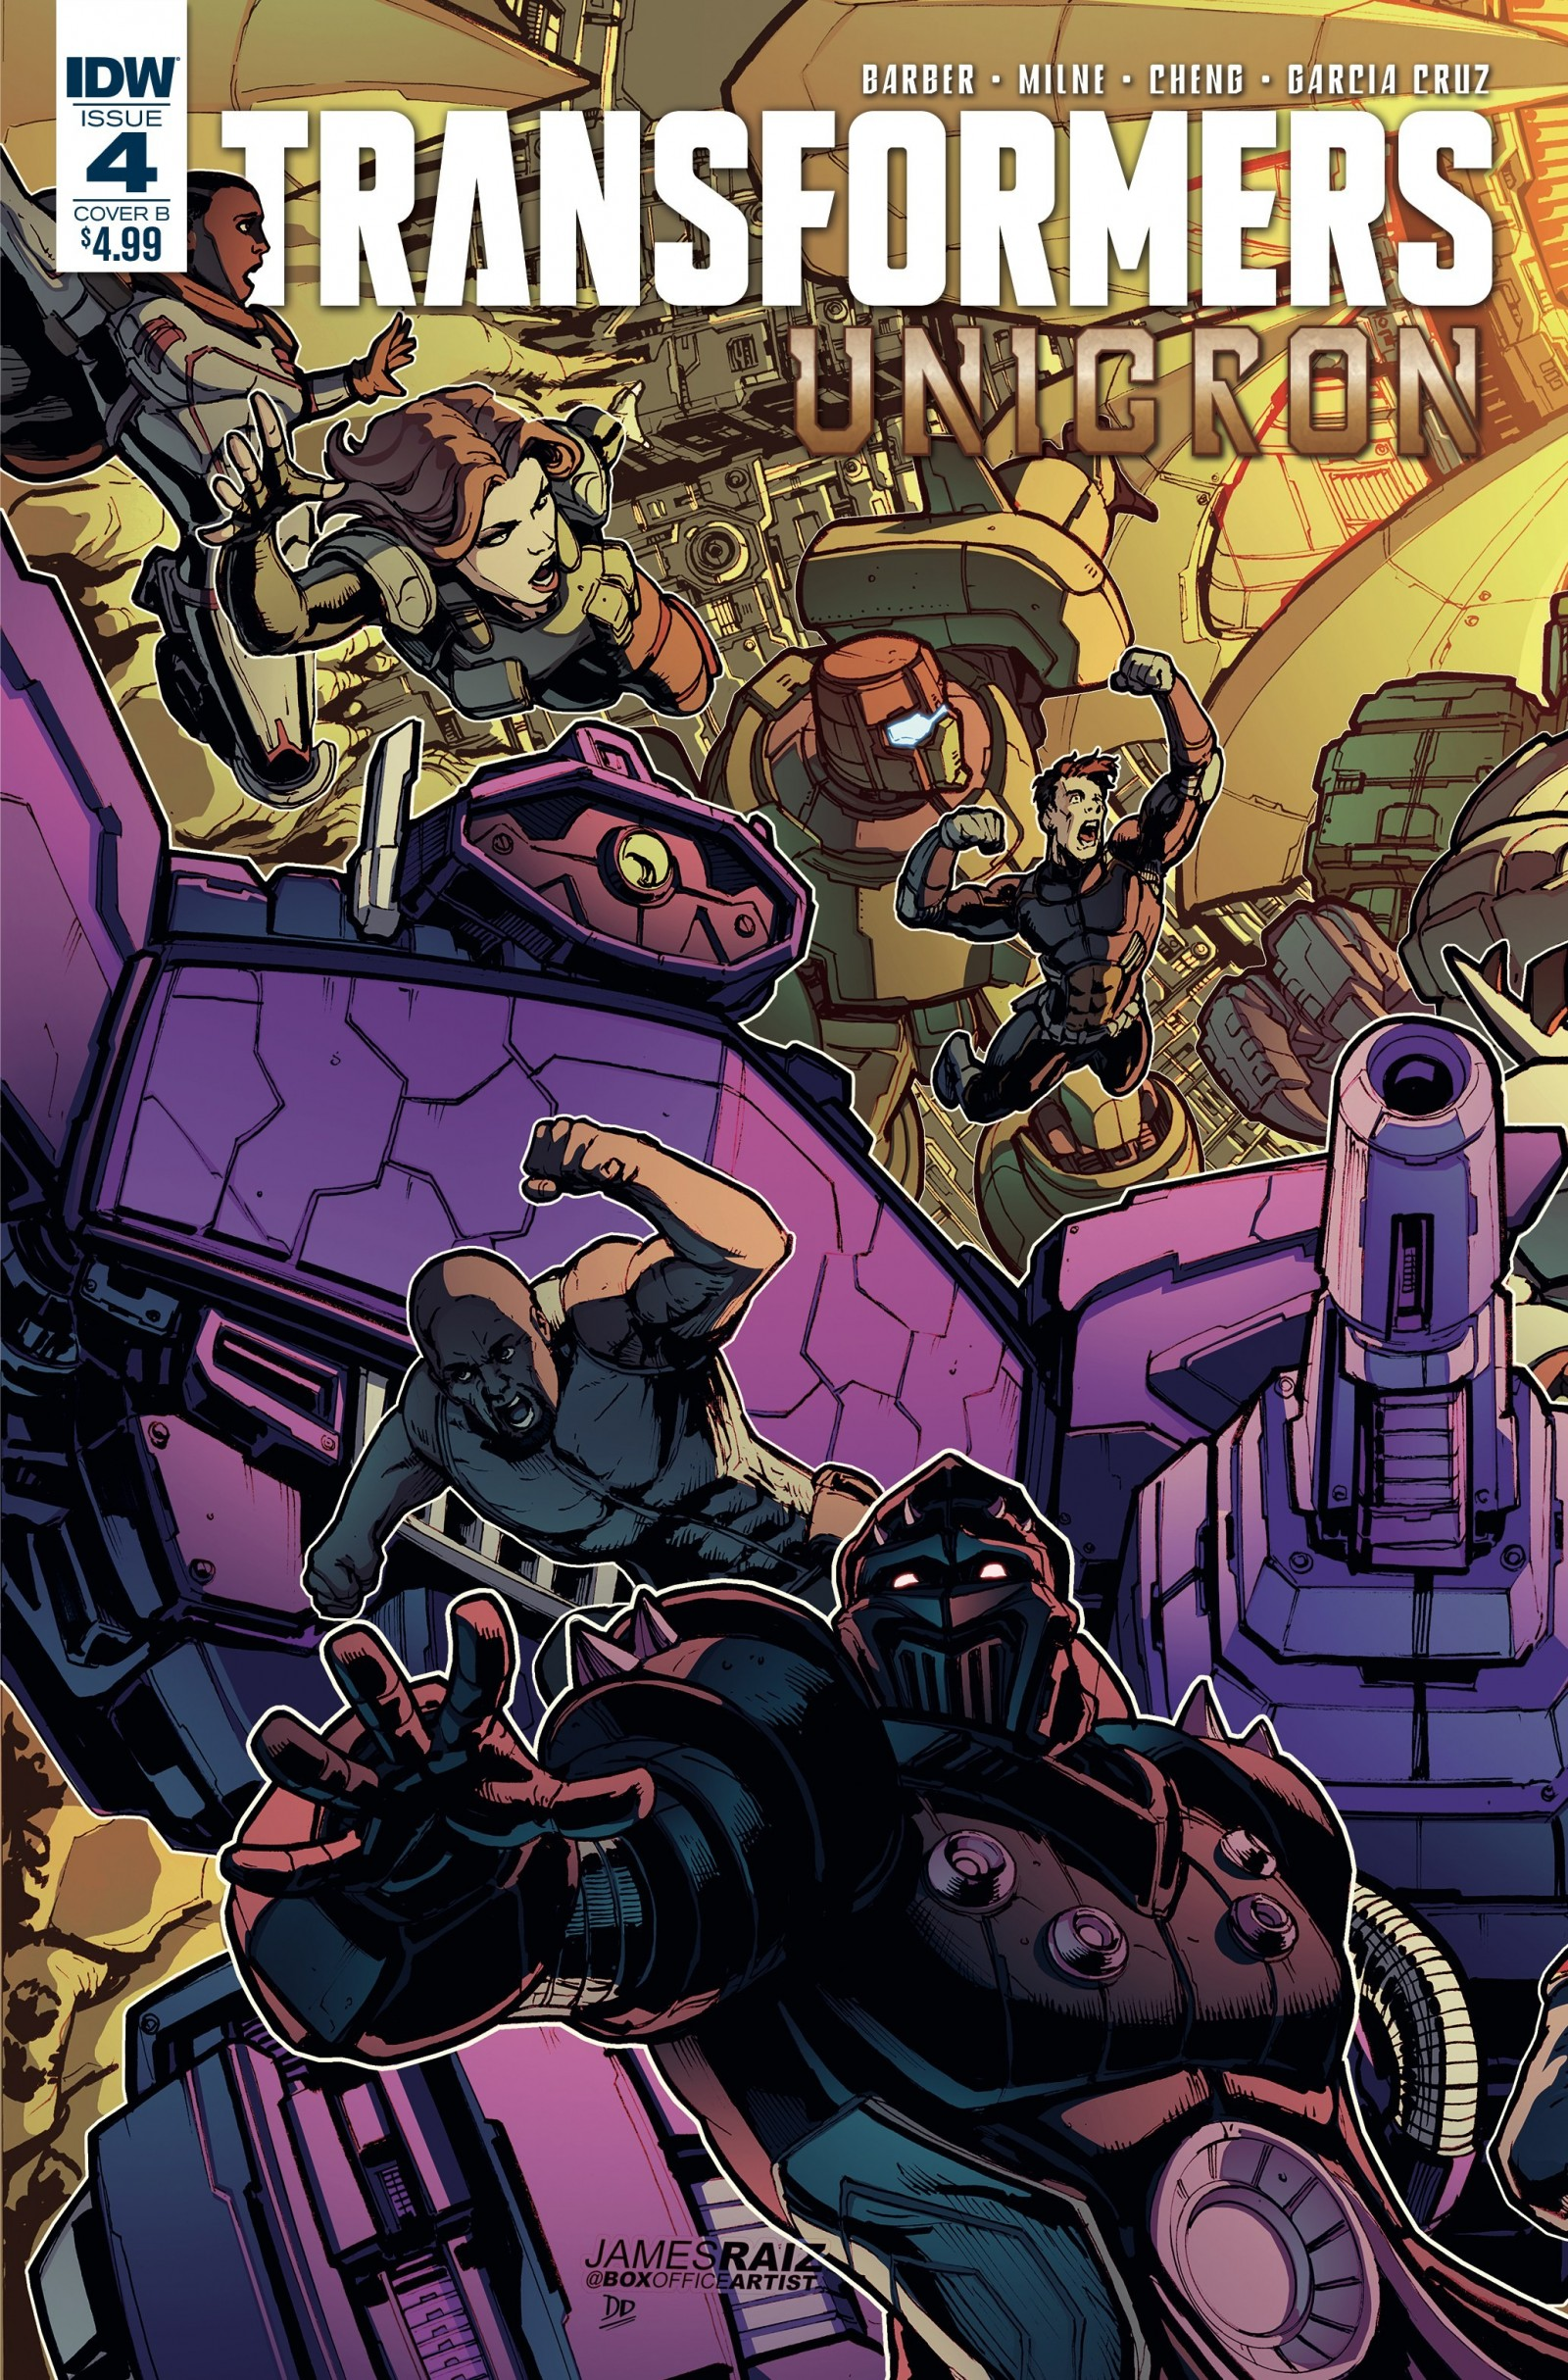 Full Preview of IDW Transformers: Unicron #4